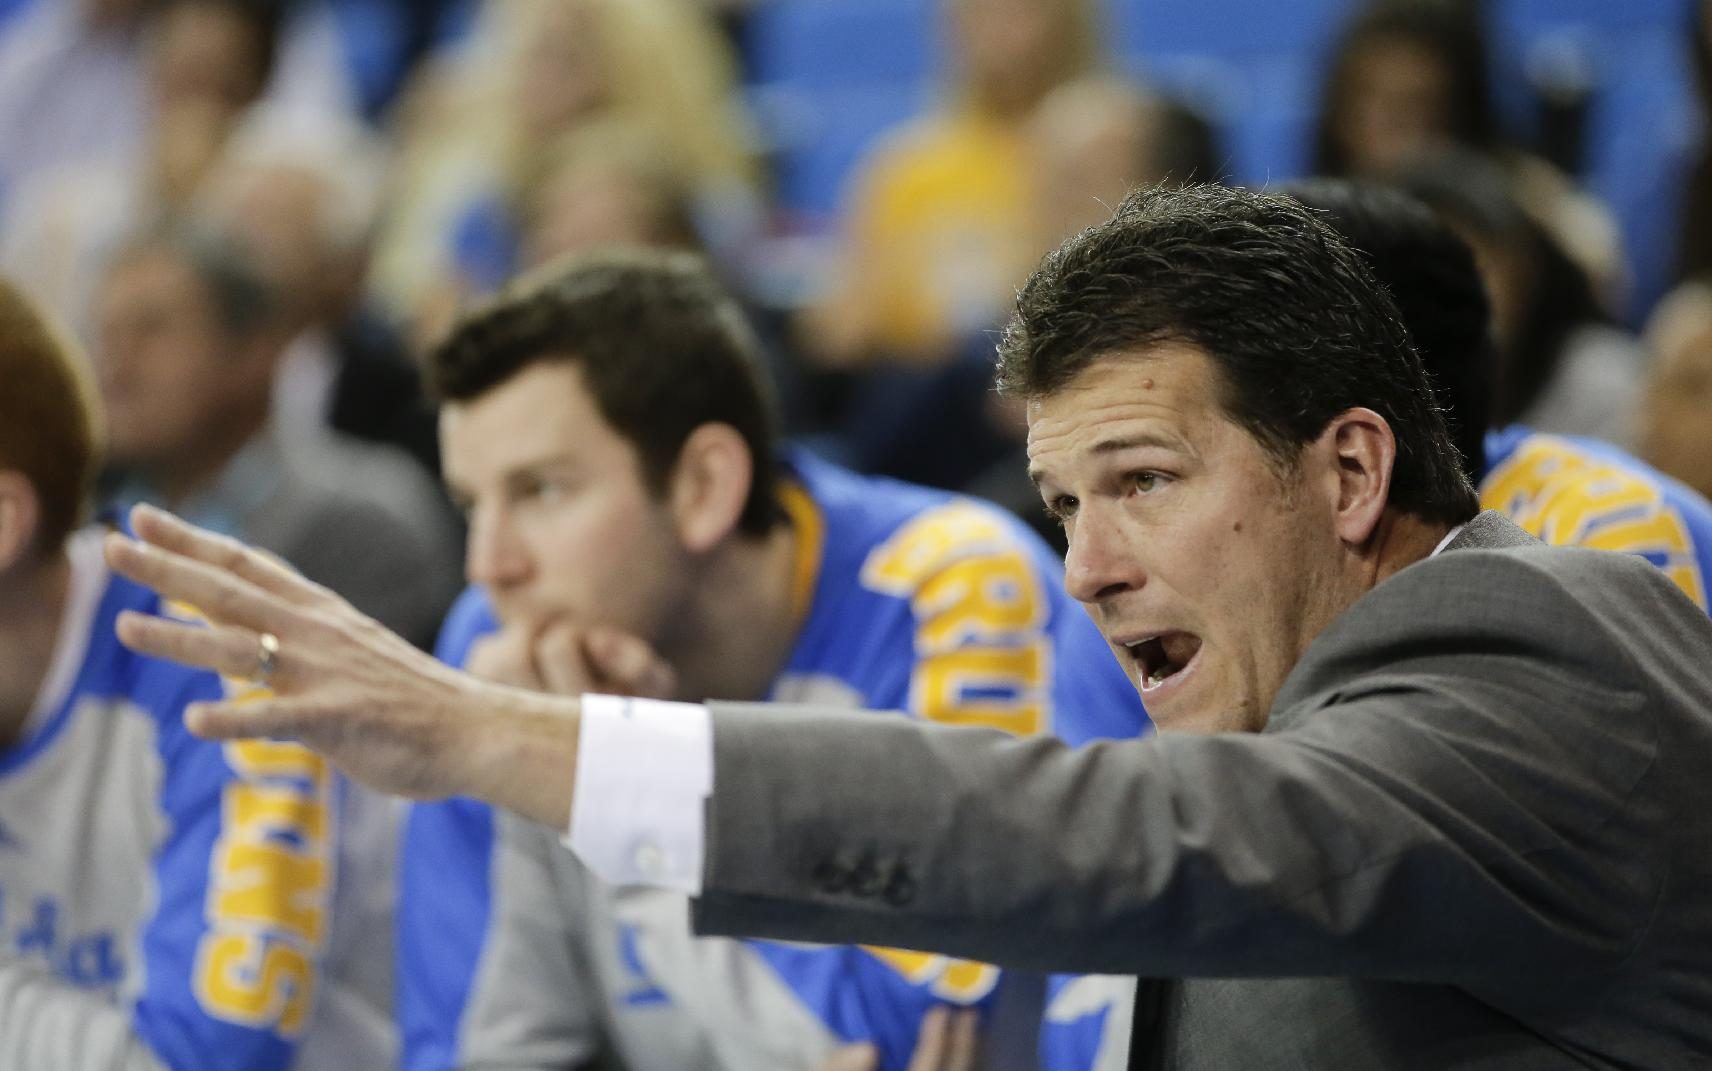 UCLA coach Steve Alford yells to his team during the second half of an NCAA college basketball game against Arizona State in Los Angeles, Sunday, Jan. 12, 2014